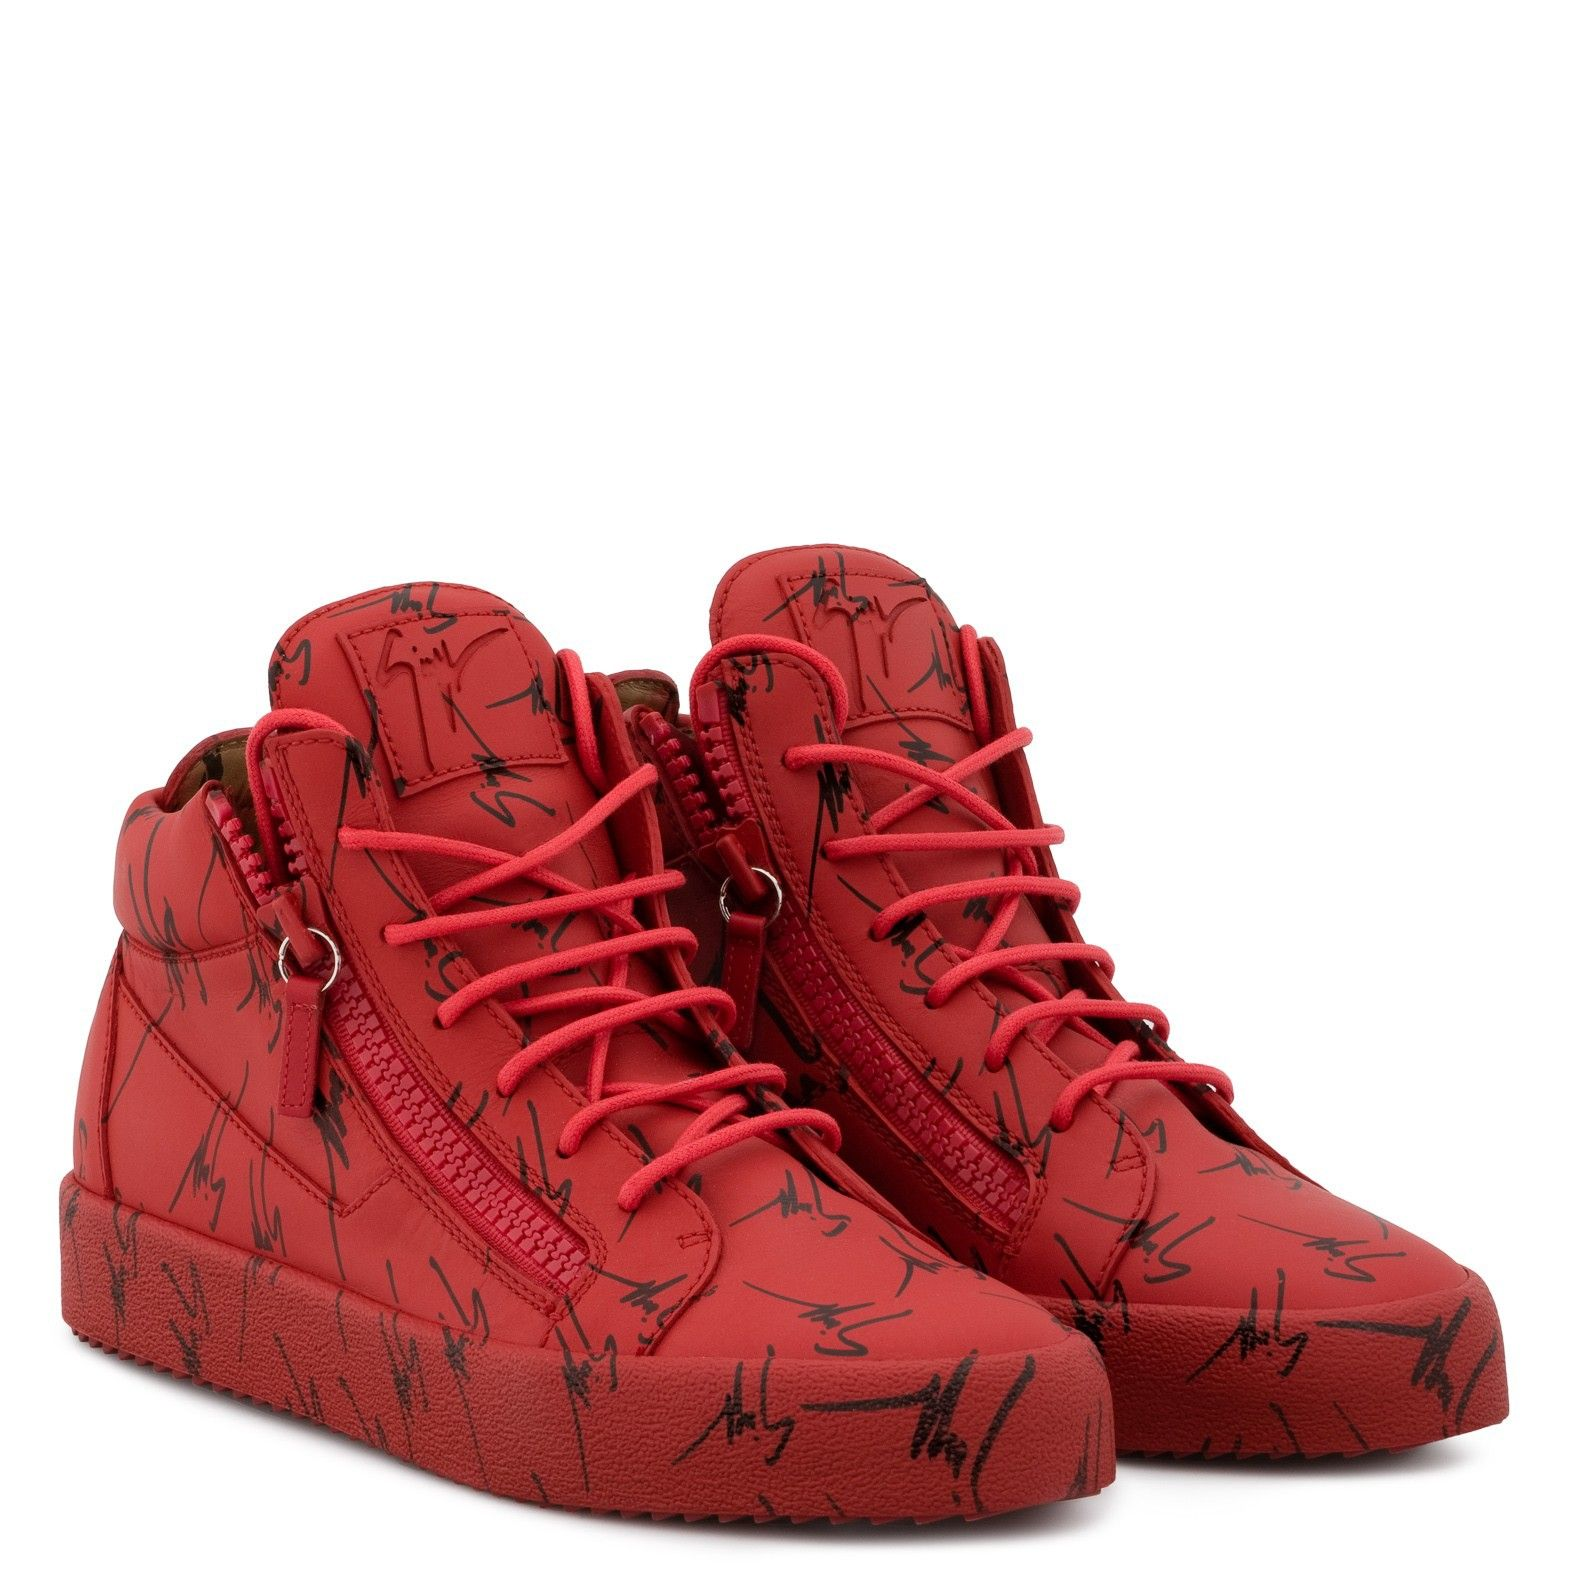 d09cbe11a82b3 Giuseppe Zanotti The Signature - Red Us7 (It40) | Products ...